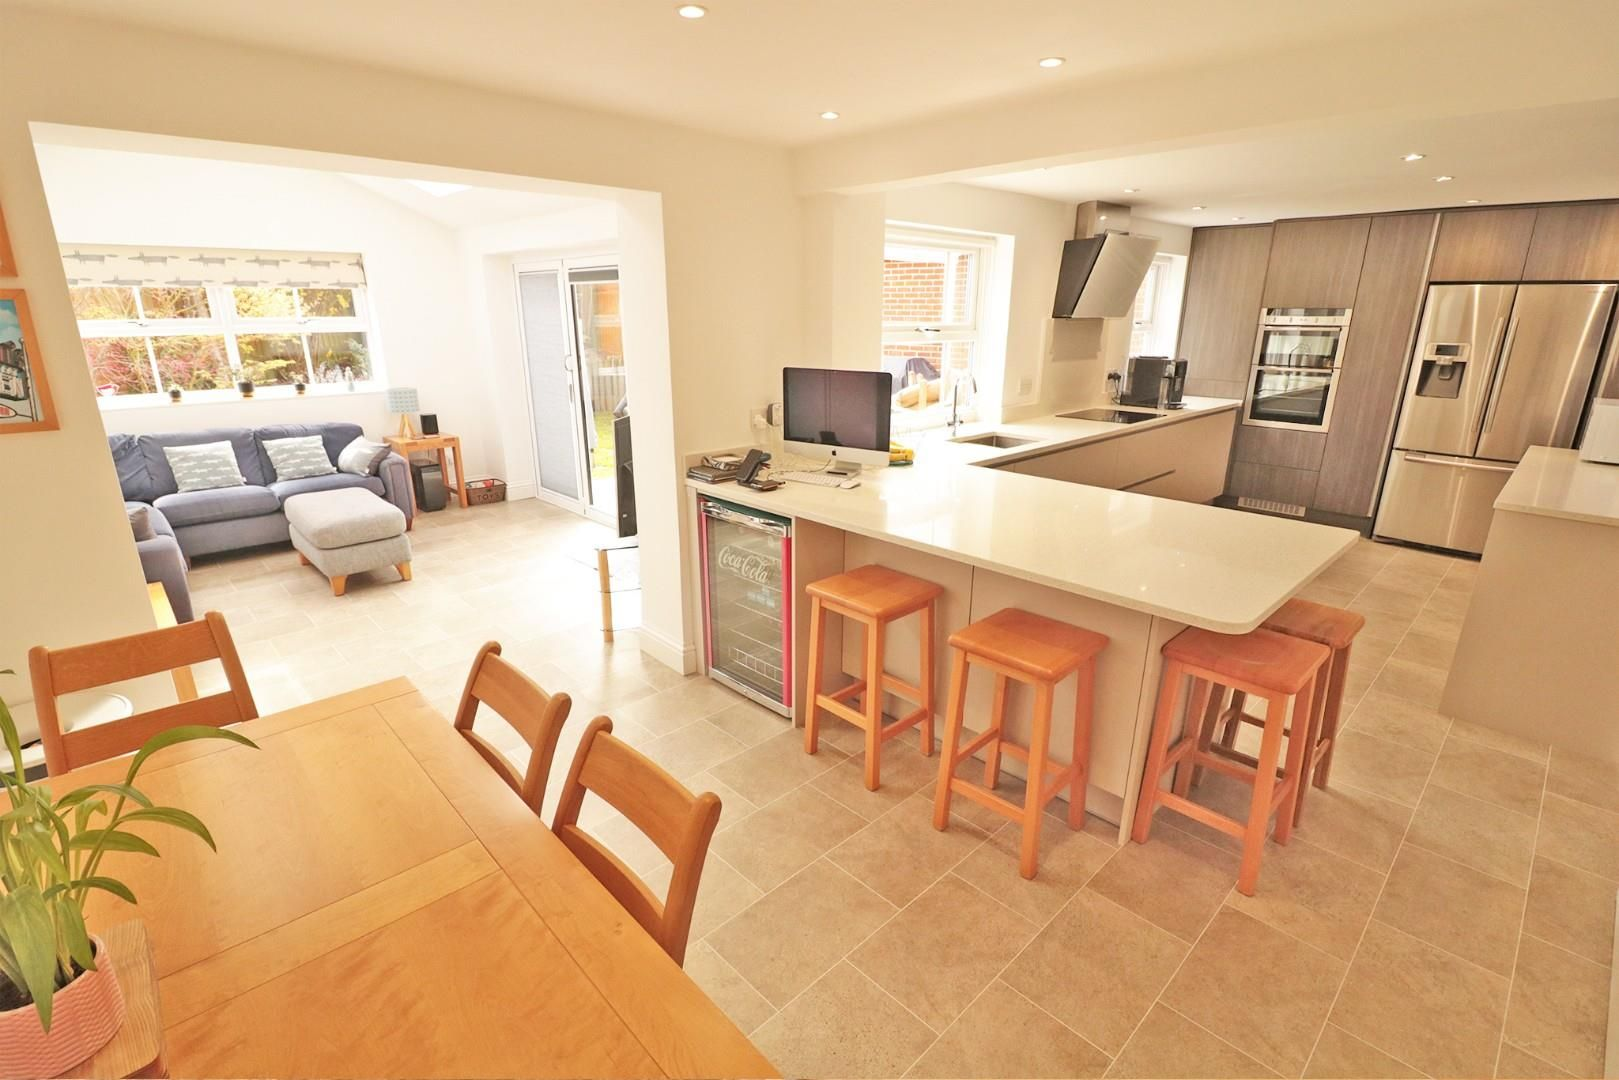 4 bed detached for sale in Binfield 2